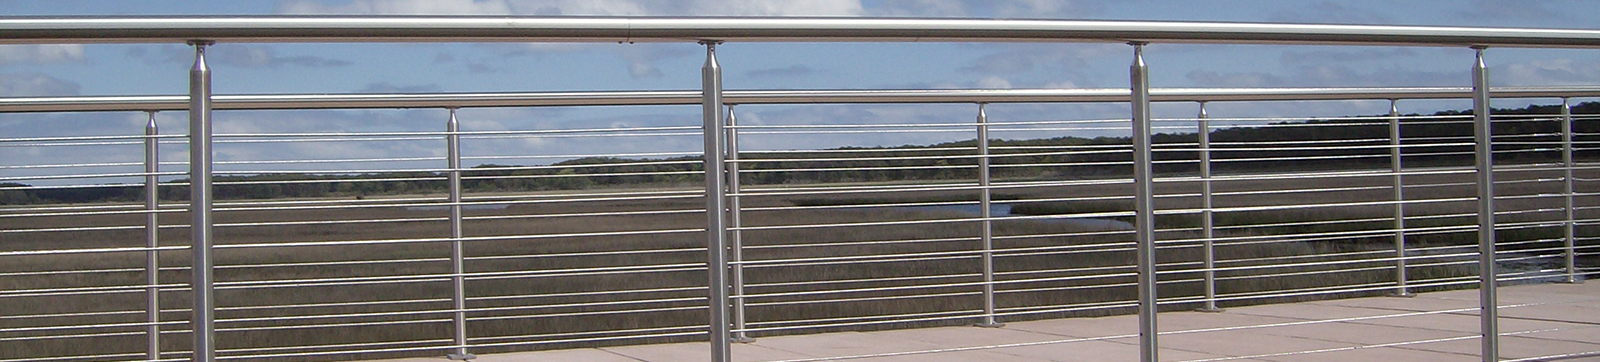 Railings-Top.jpg